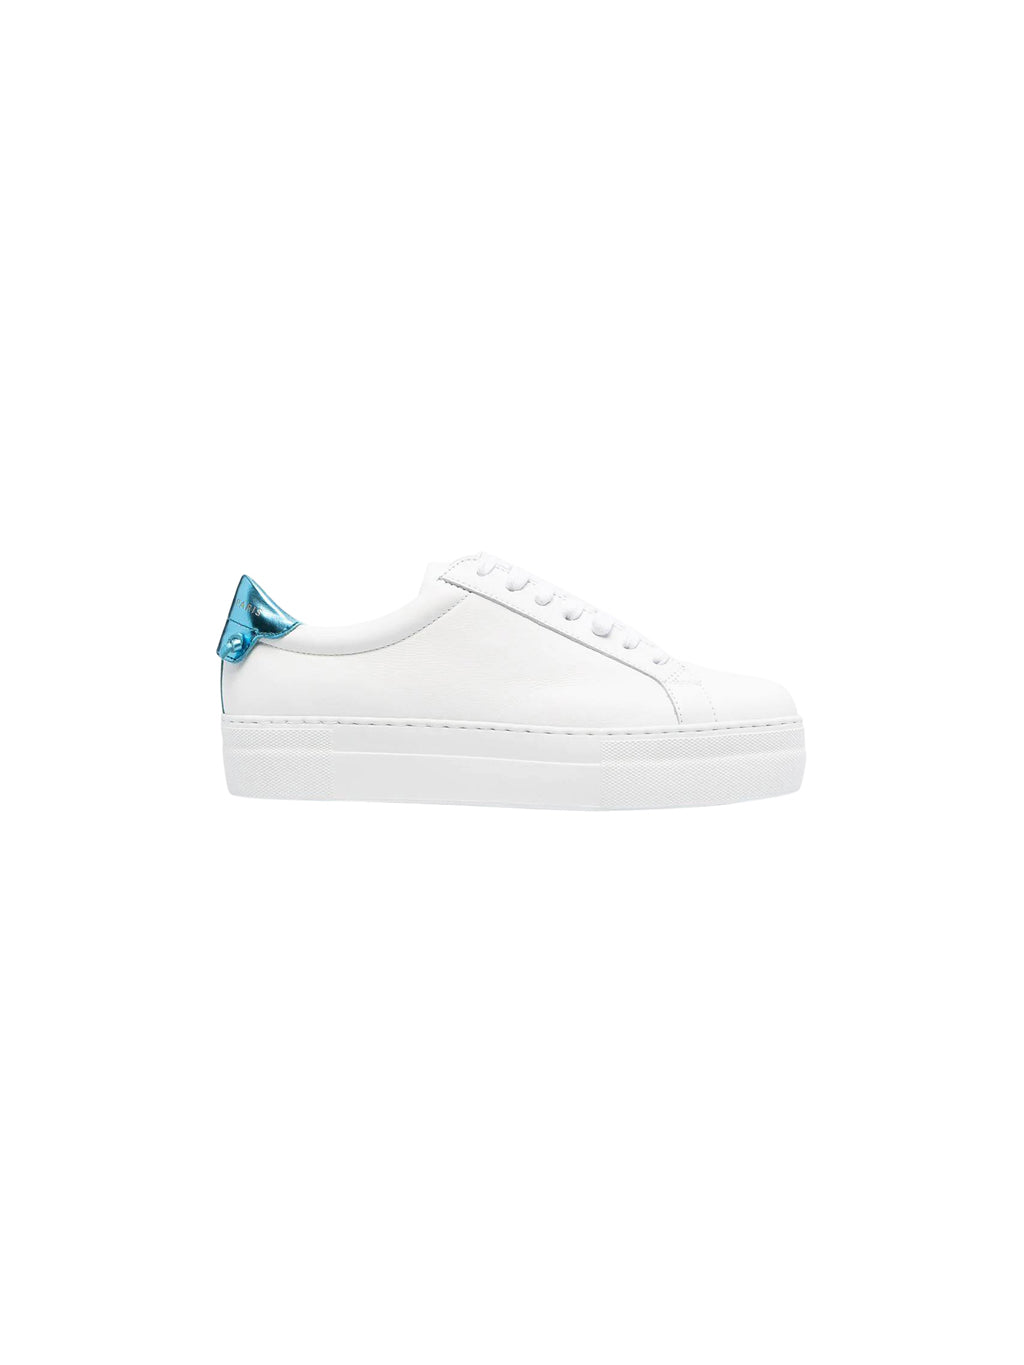 White & Blue Two Tone Urban Street Sneaker